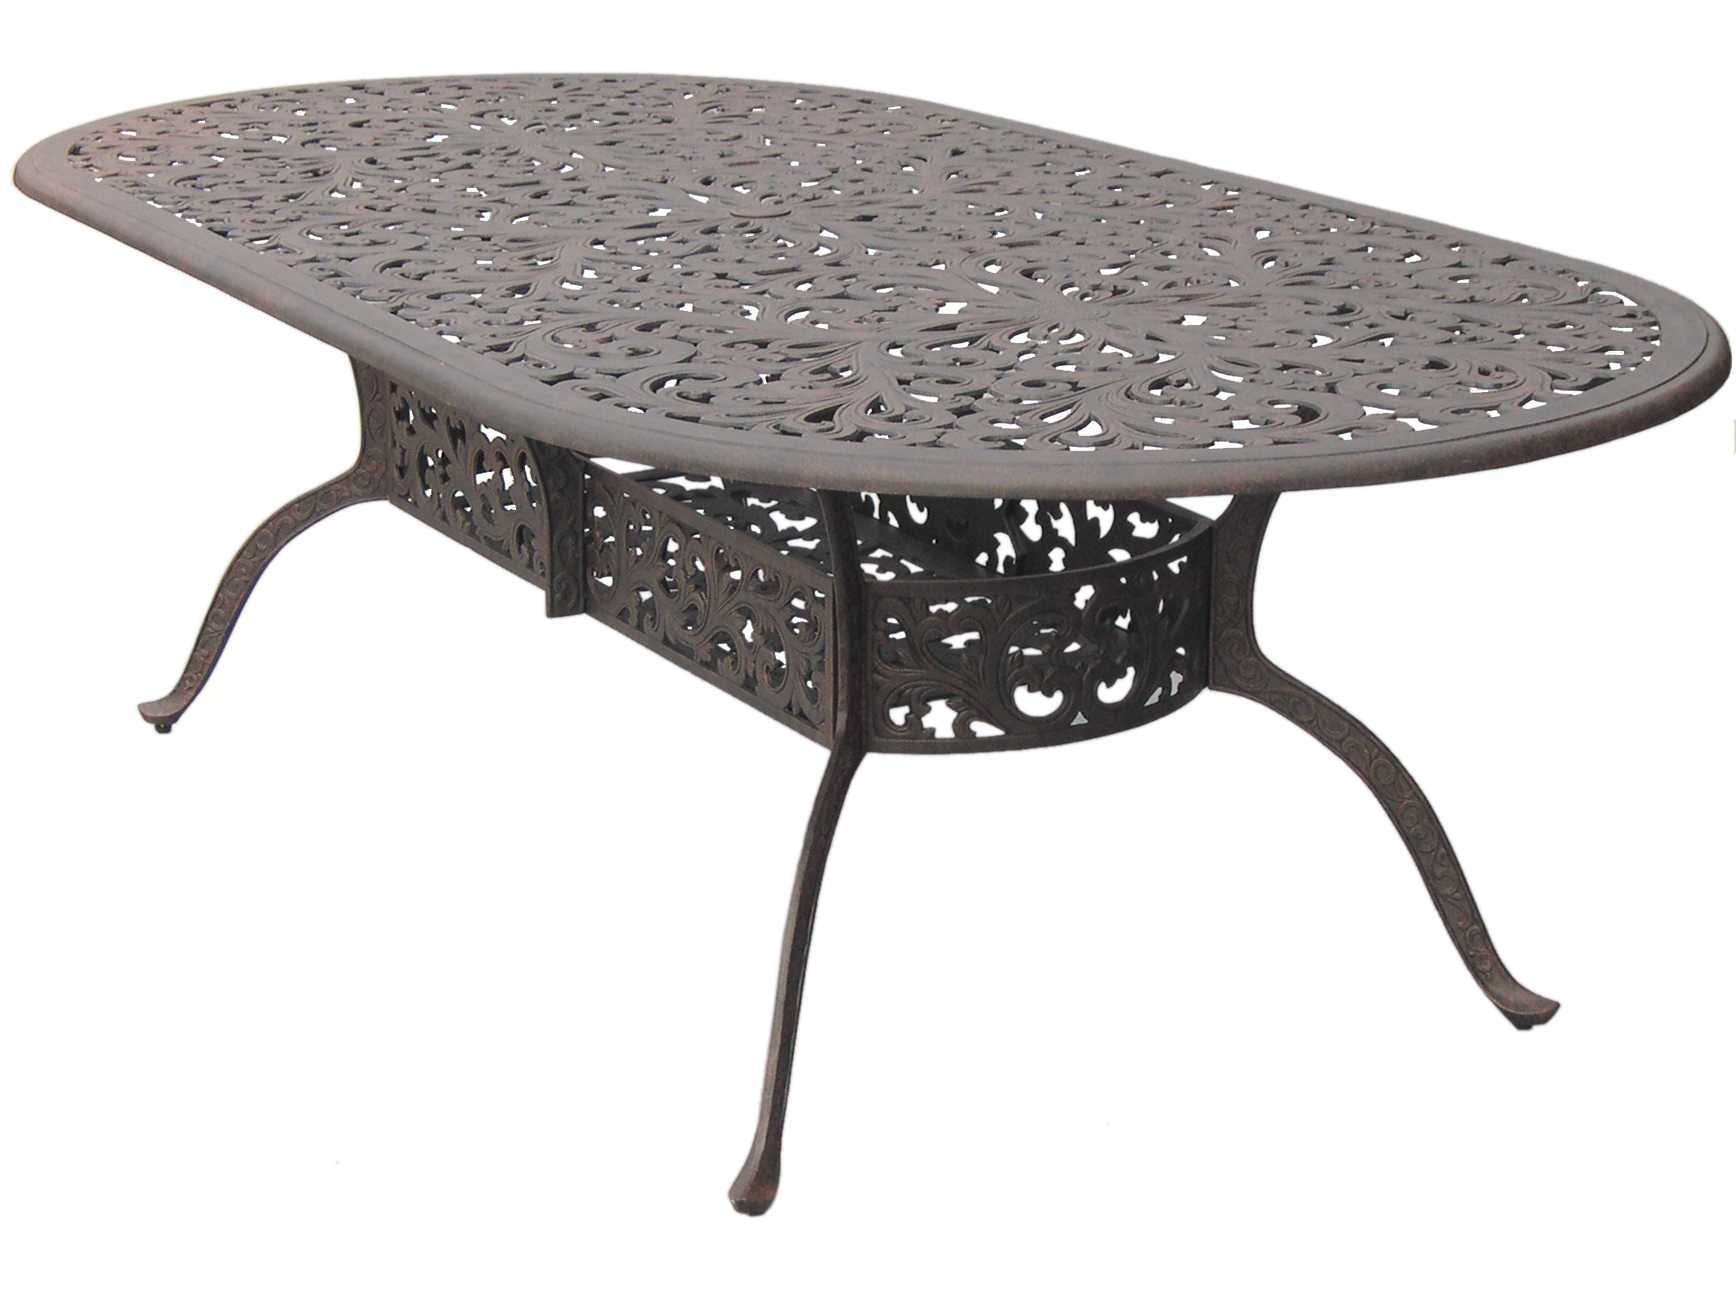 Ship Series 80 Cast Aluminum Antique Bronze 96 X 48 Oval Dining Table